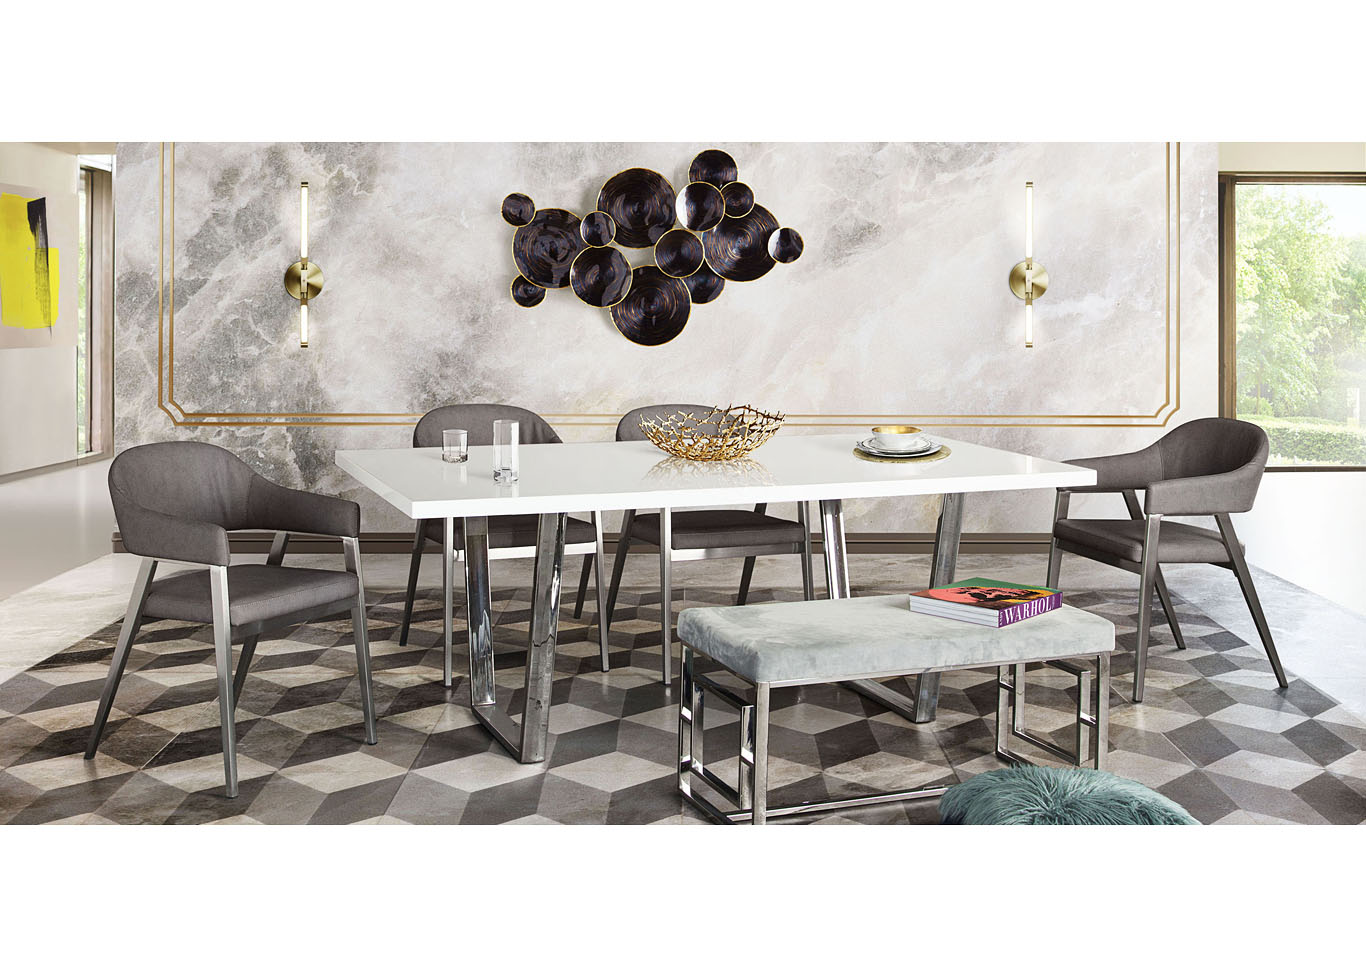 Mirage Rectangular Dining Table w/White Lacquer Top & Chrome Base,Diamond Sofa